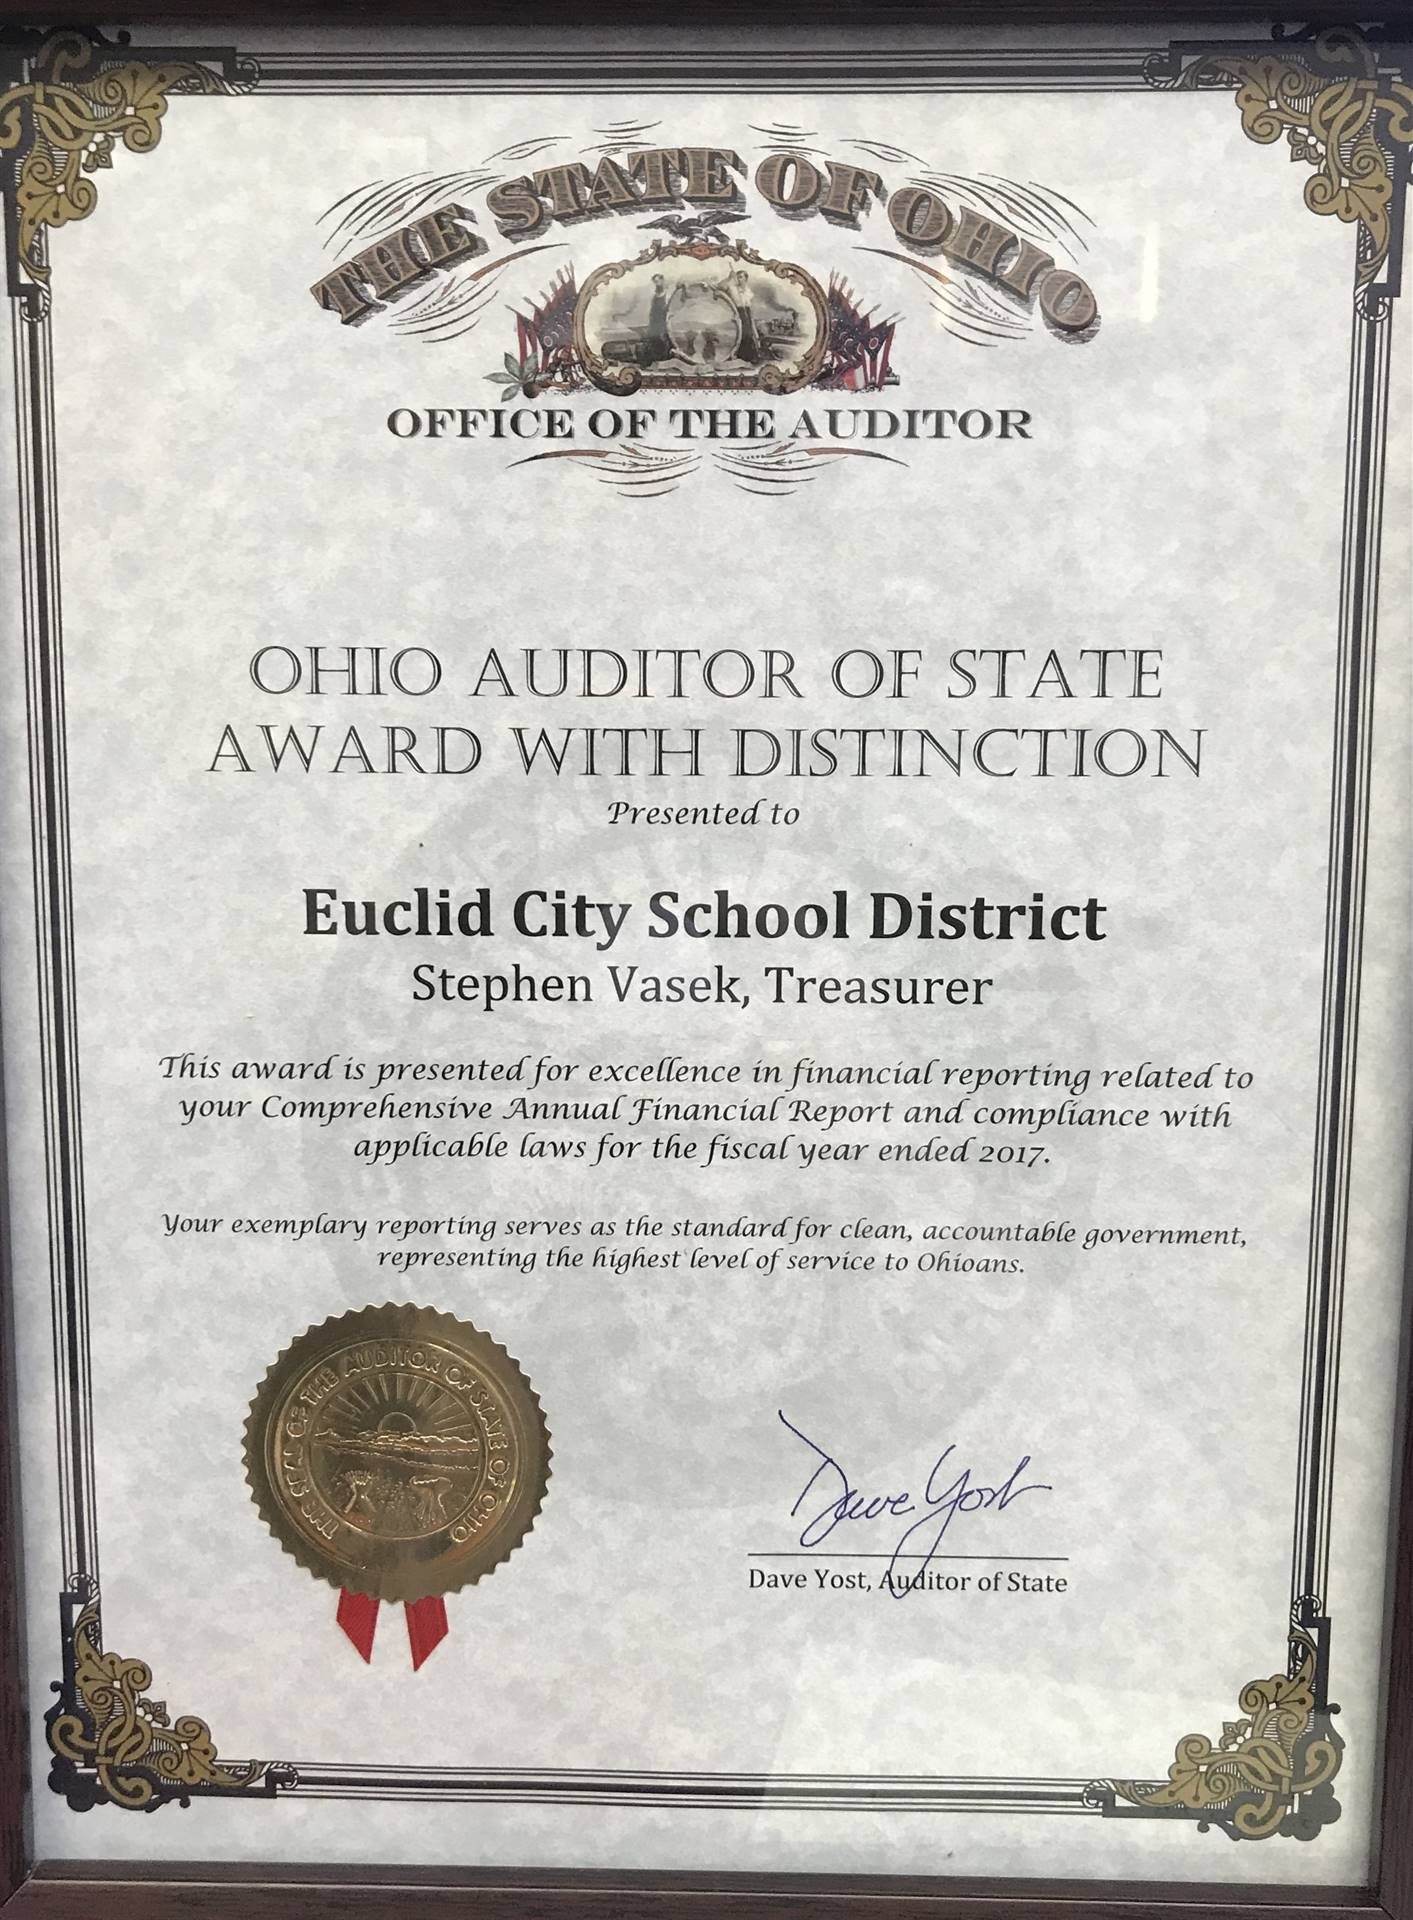 2017-2018 Ohio Auditor of State Award with Distinction